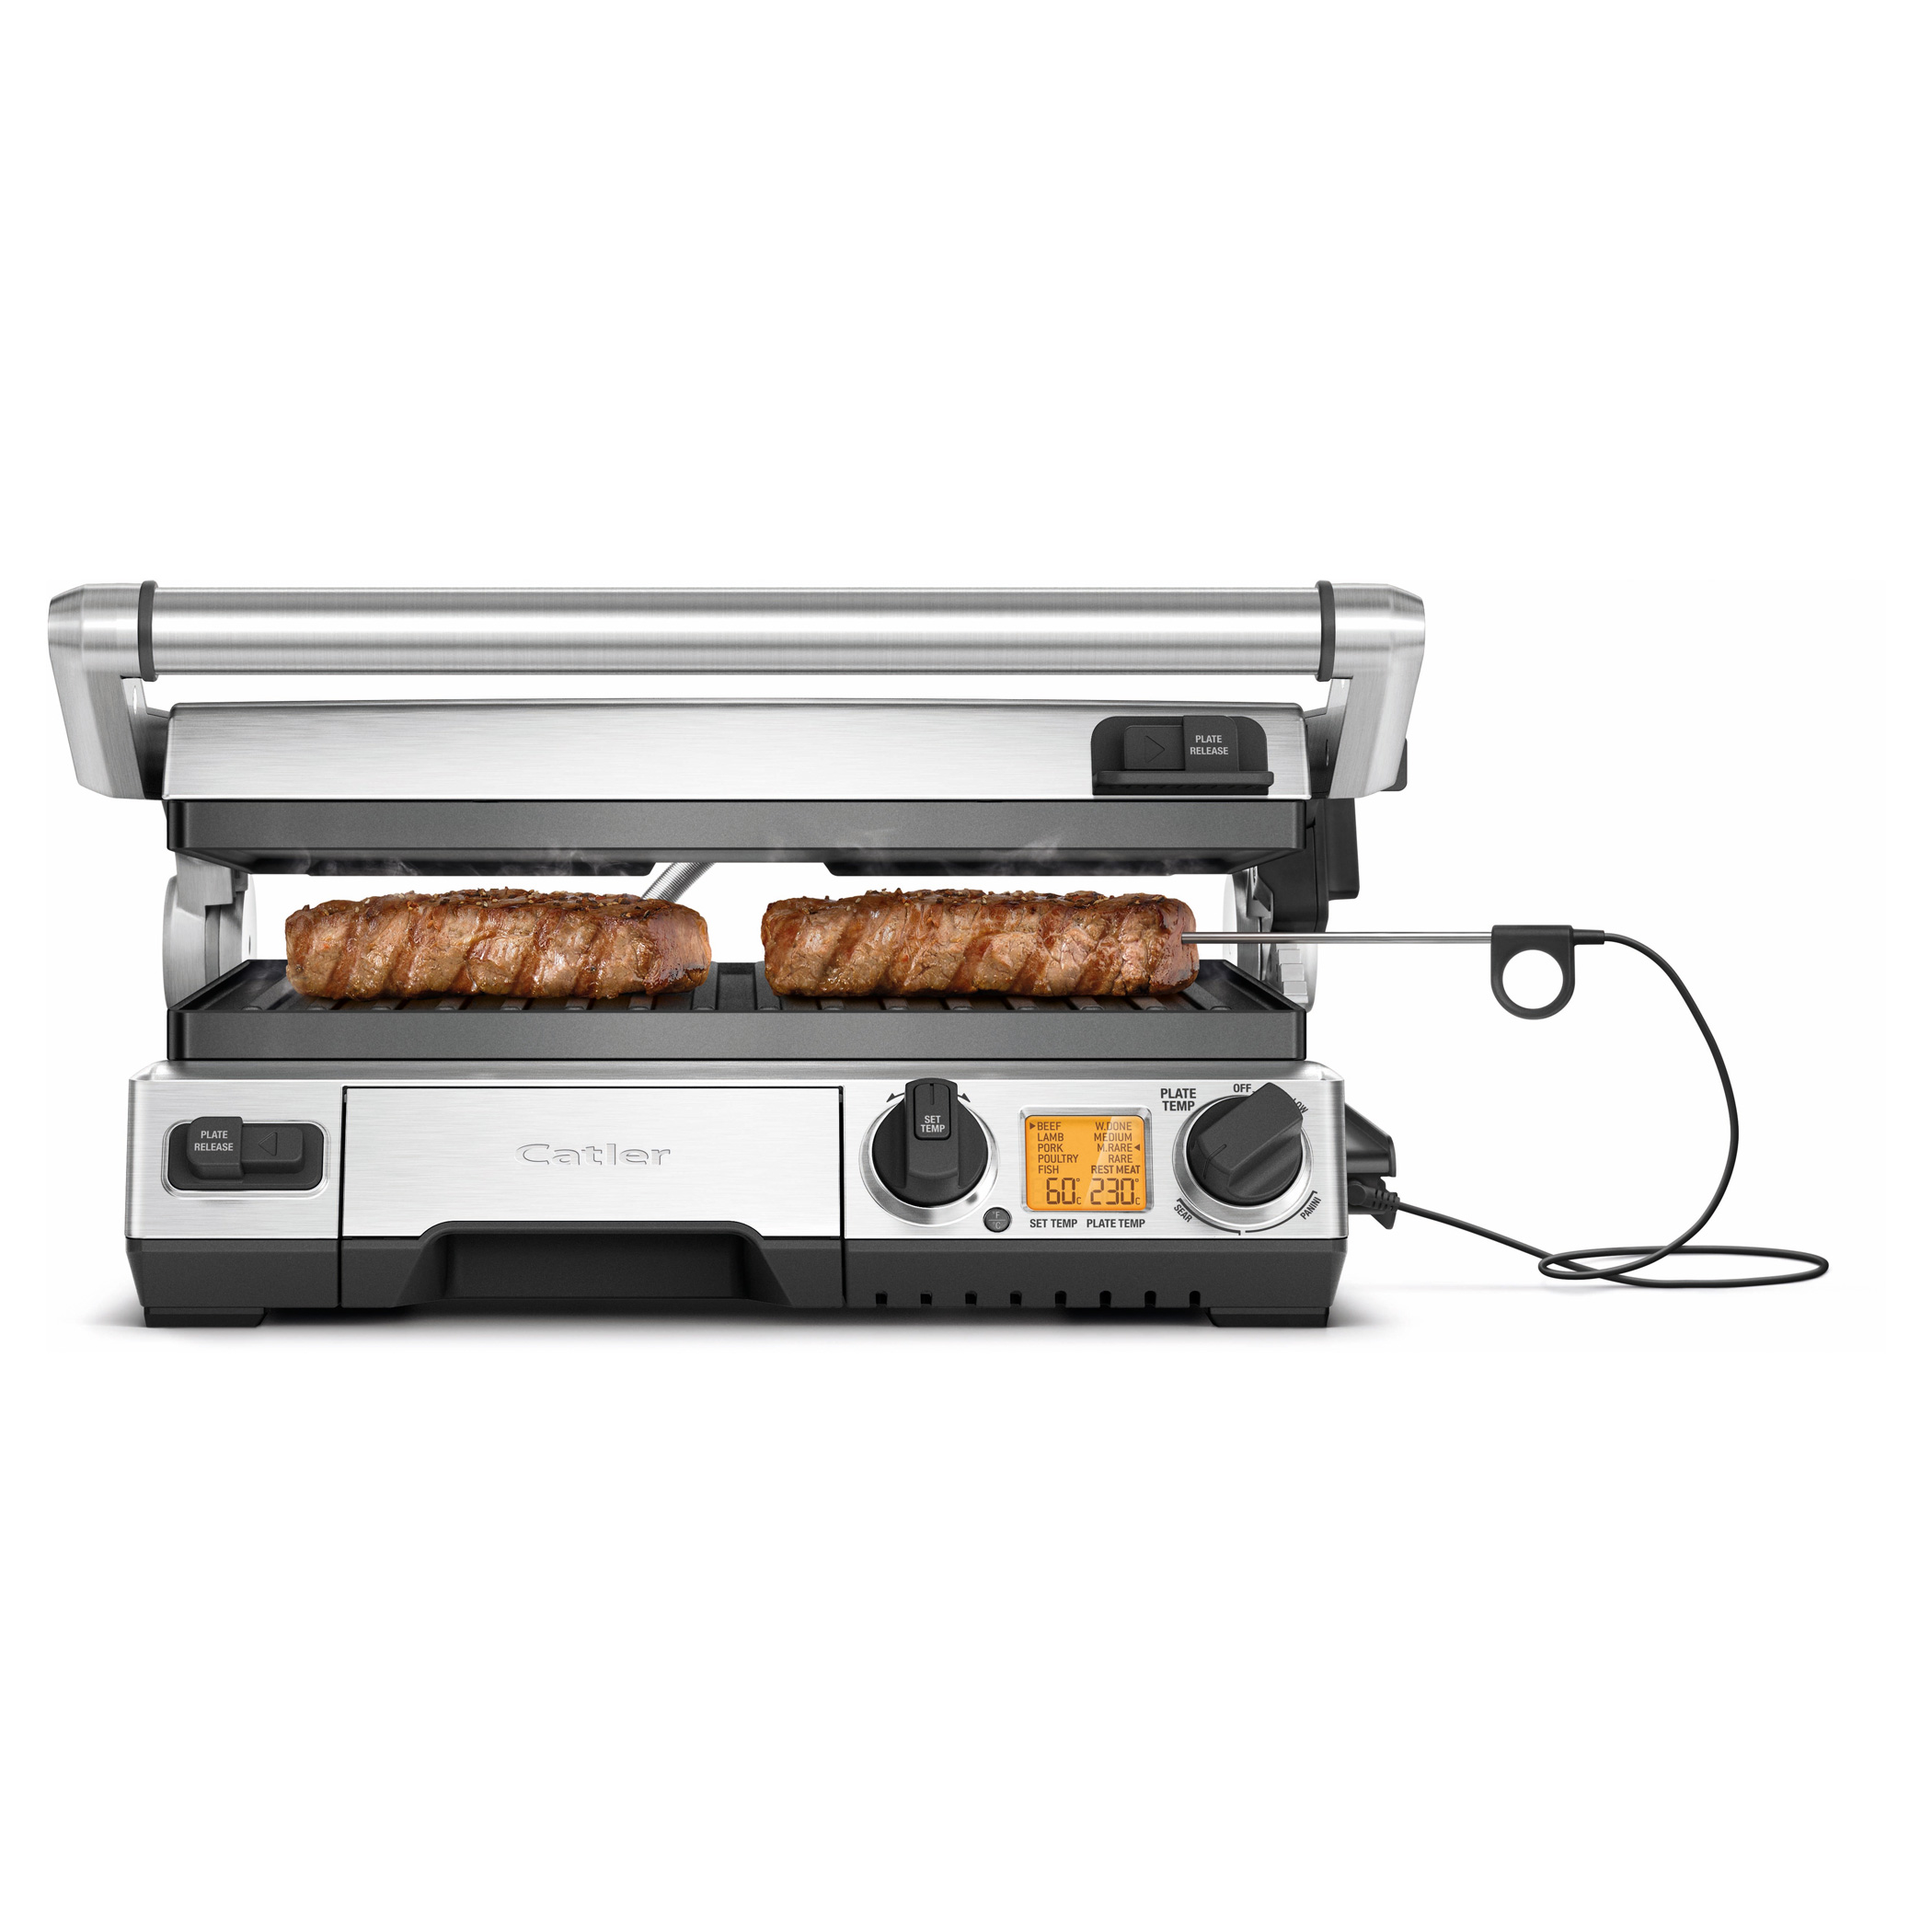 a best oven home for smart whom system toaster countertop photos product june but